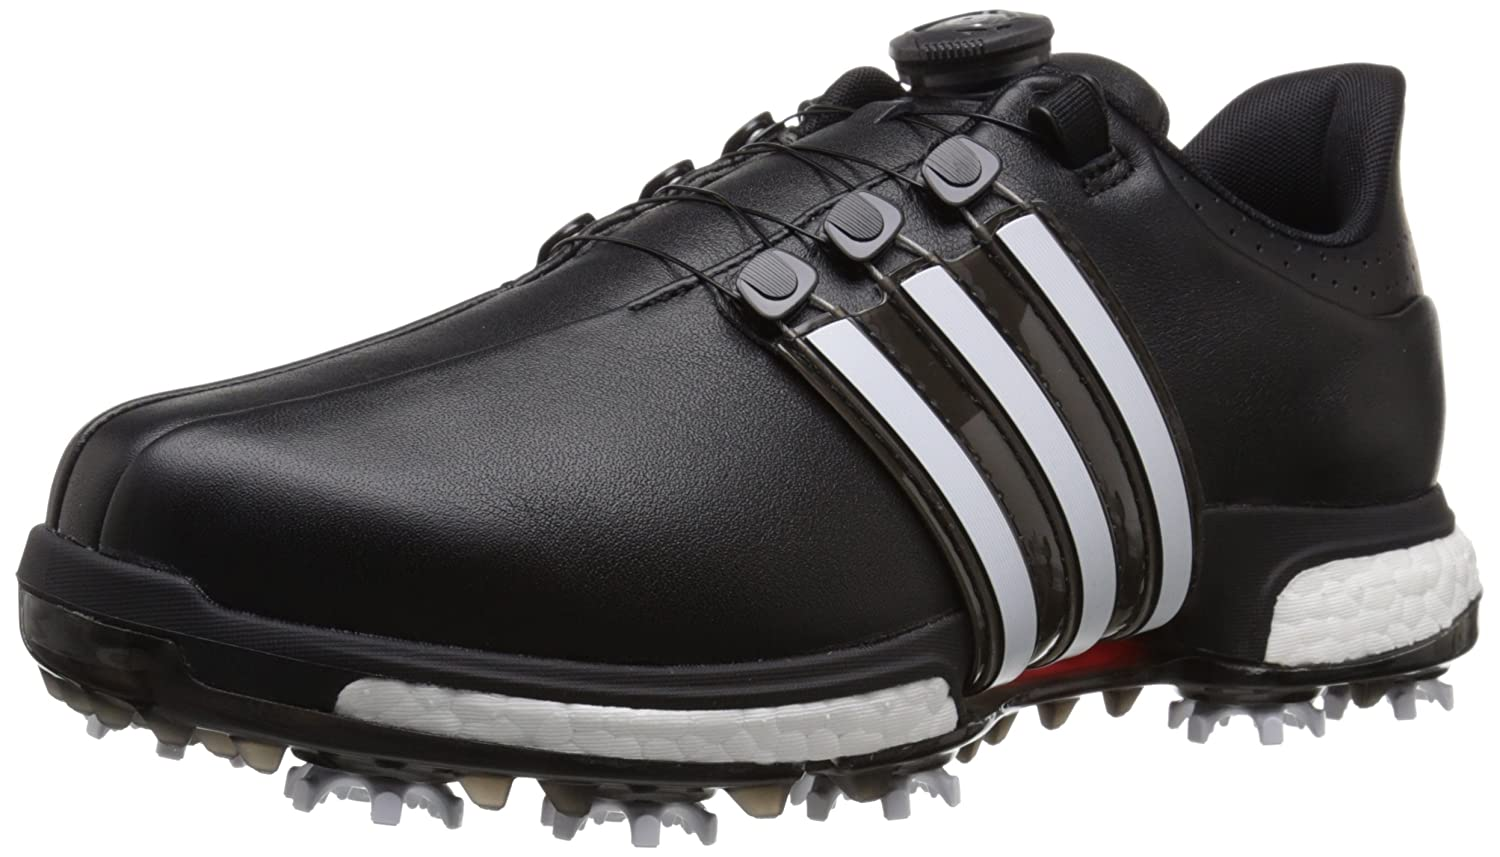 adidas Golf Men's Tour360 Boa Boost Spiked Shoe B013US90EK 14 D(M) US|Core Black/Ftwr White/Power Red